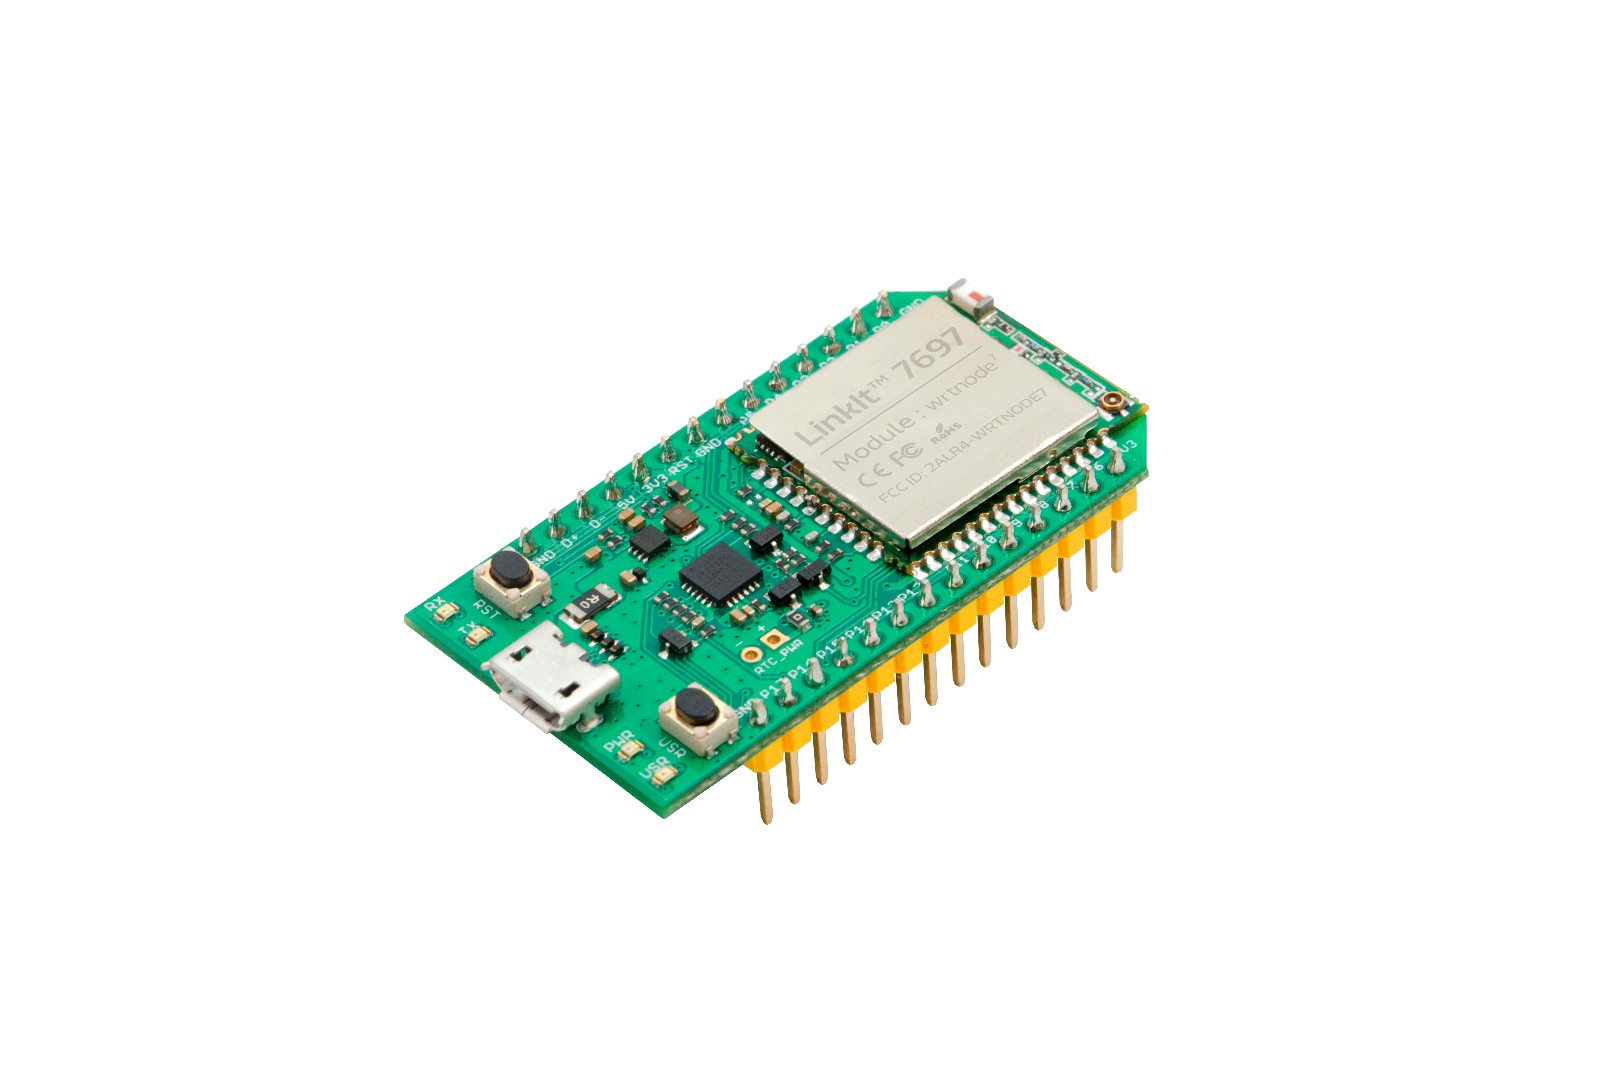 LinkIt 7697 board with MT7697